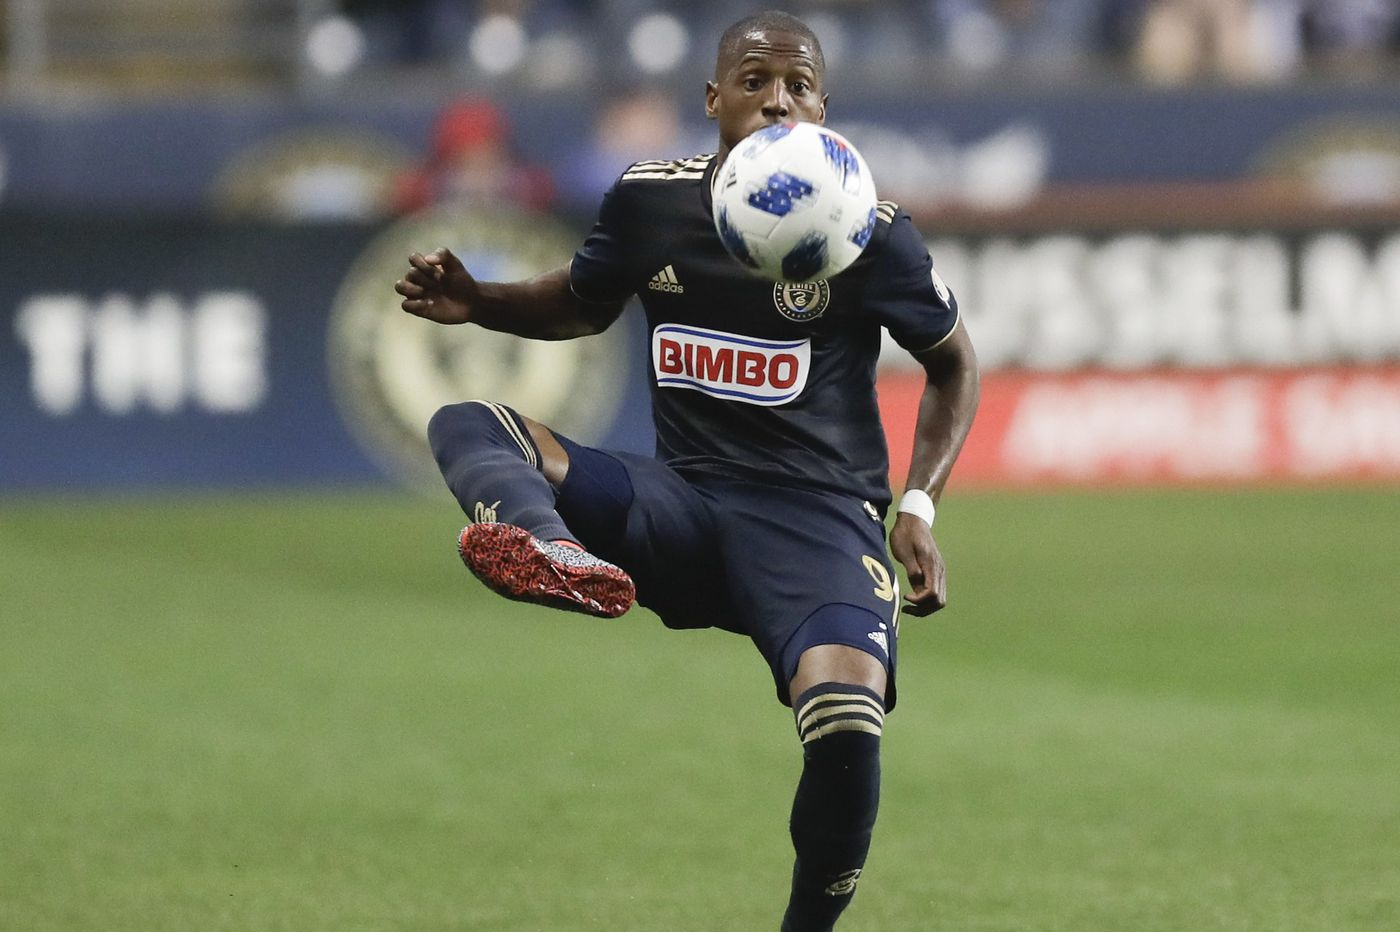 Union give up late lead in 2-2 tie at Orlando City